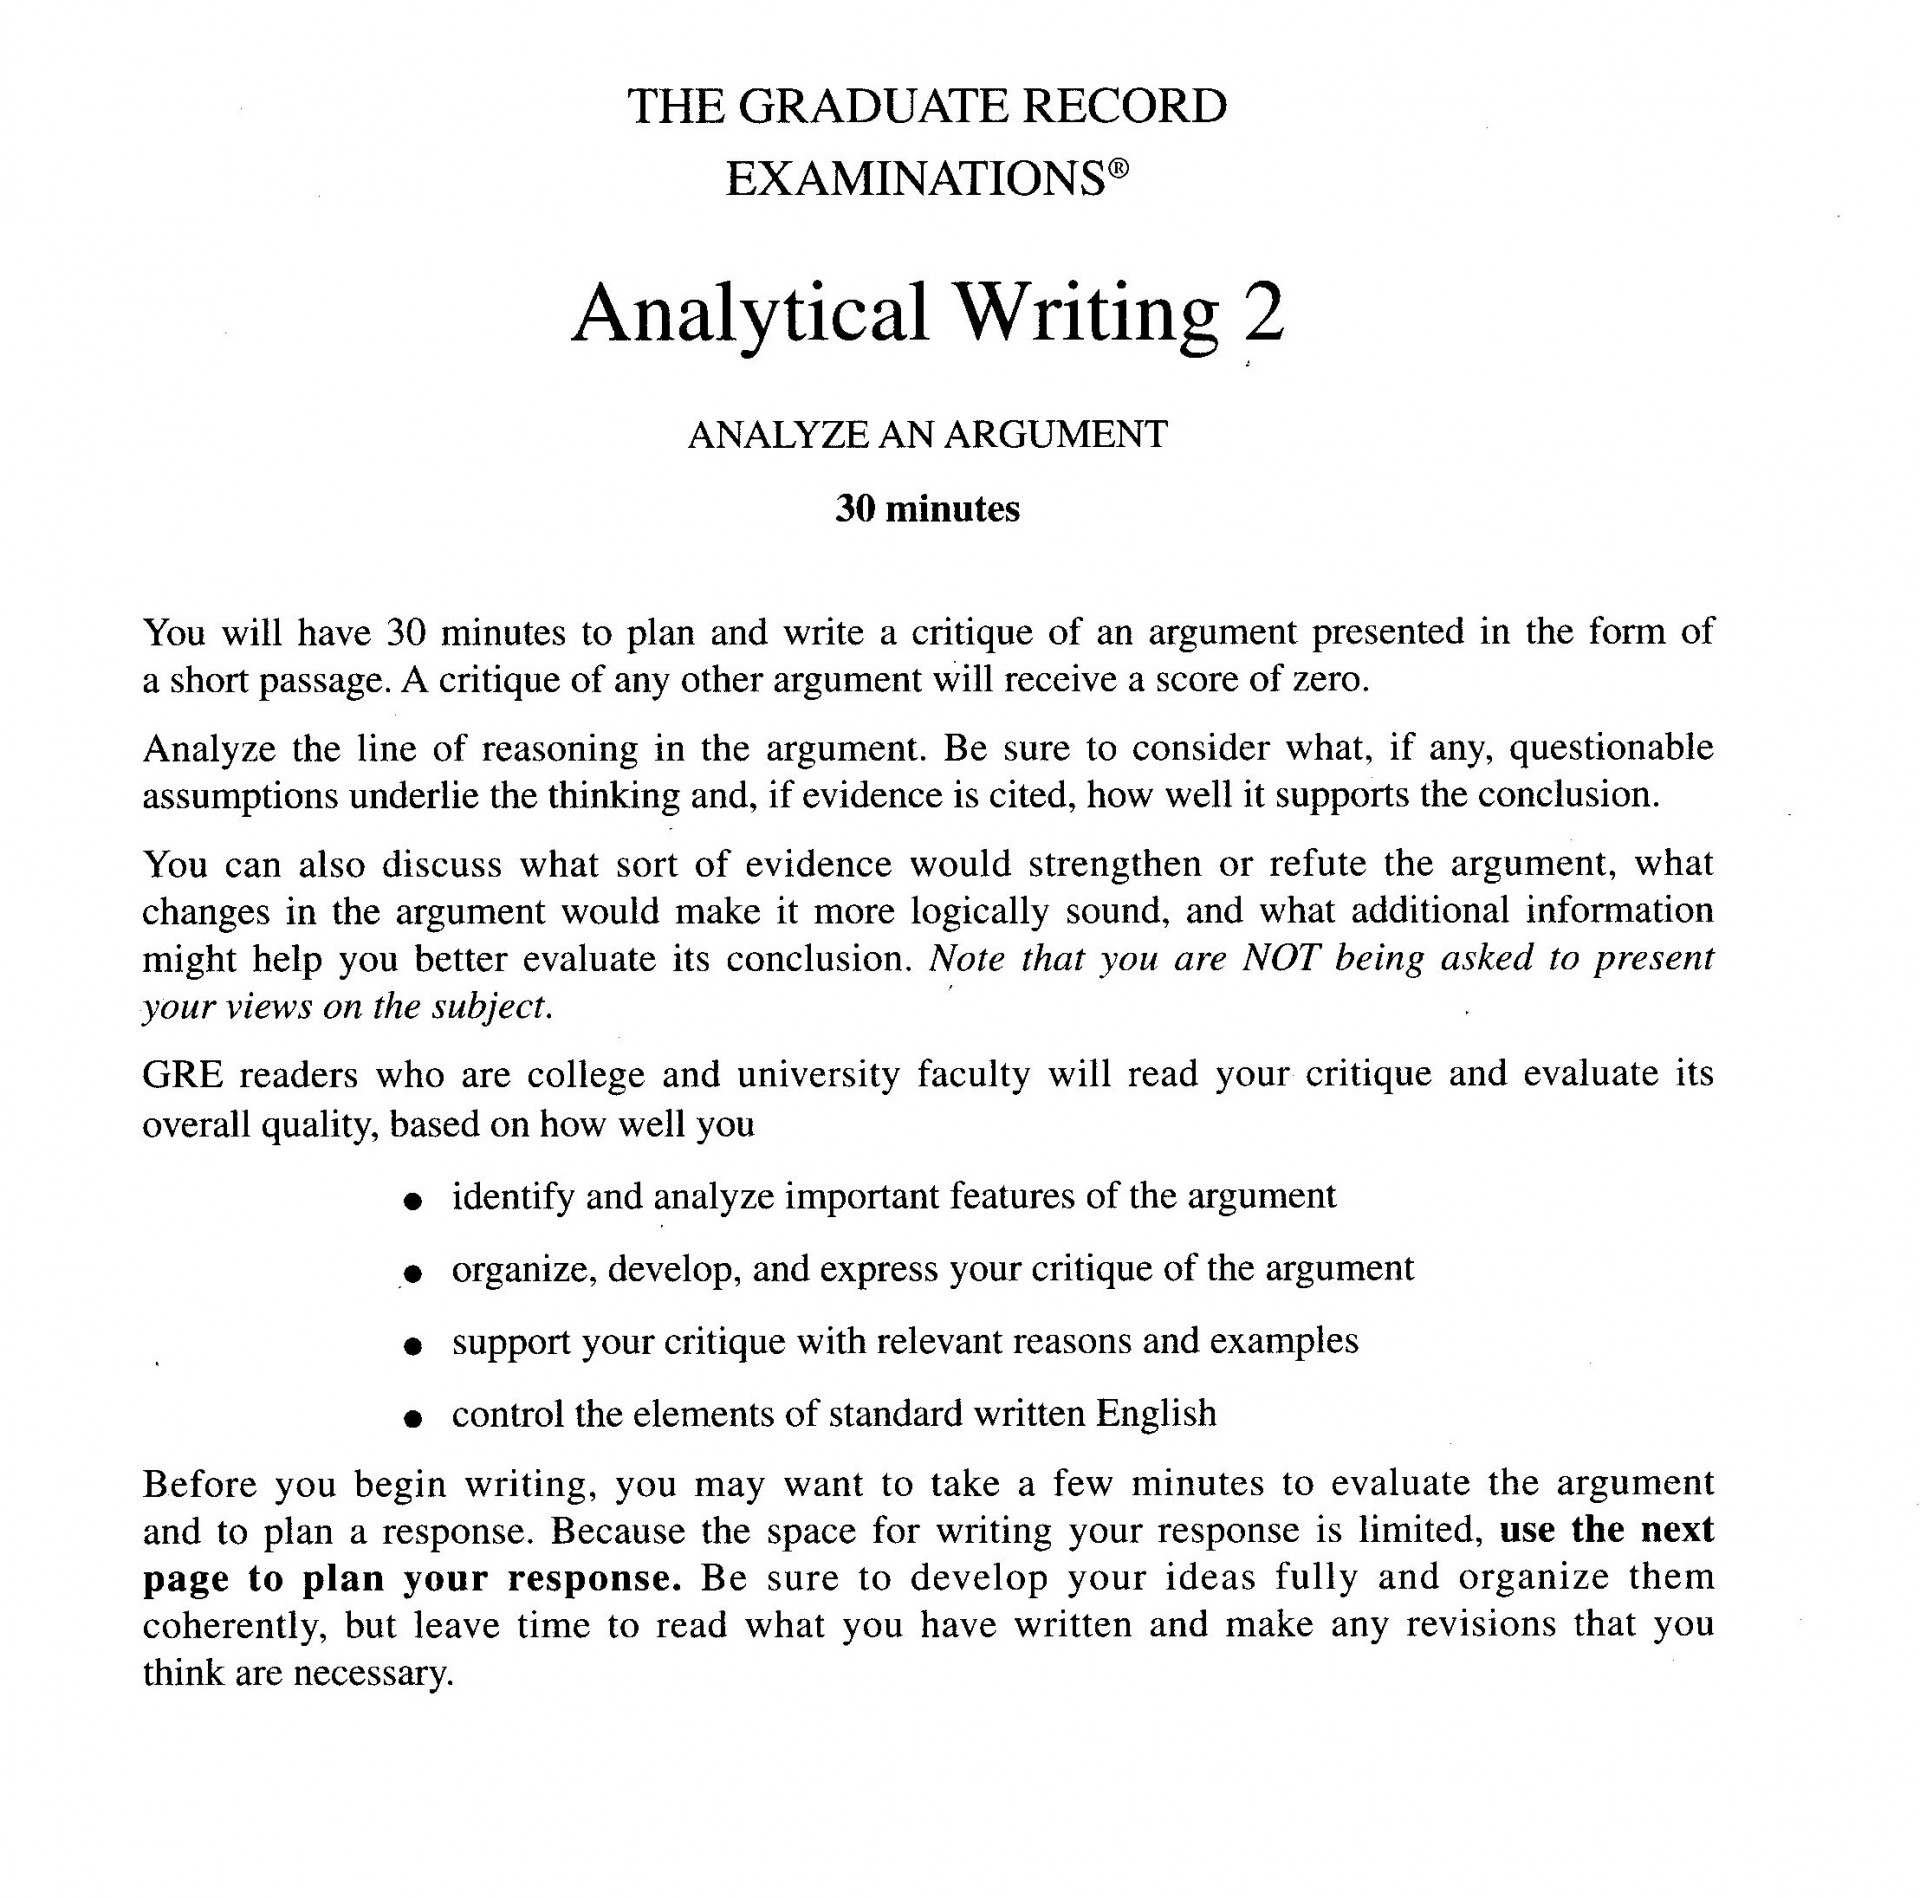 022 Analytical20writing20response20task20directions20for20gre201 Njhs Essay Conclusion Unique 1920